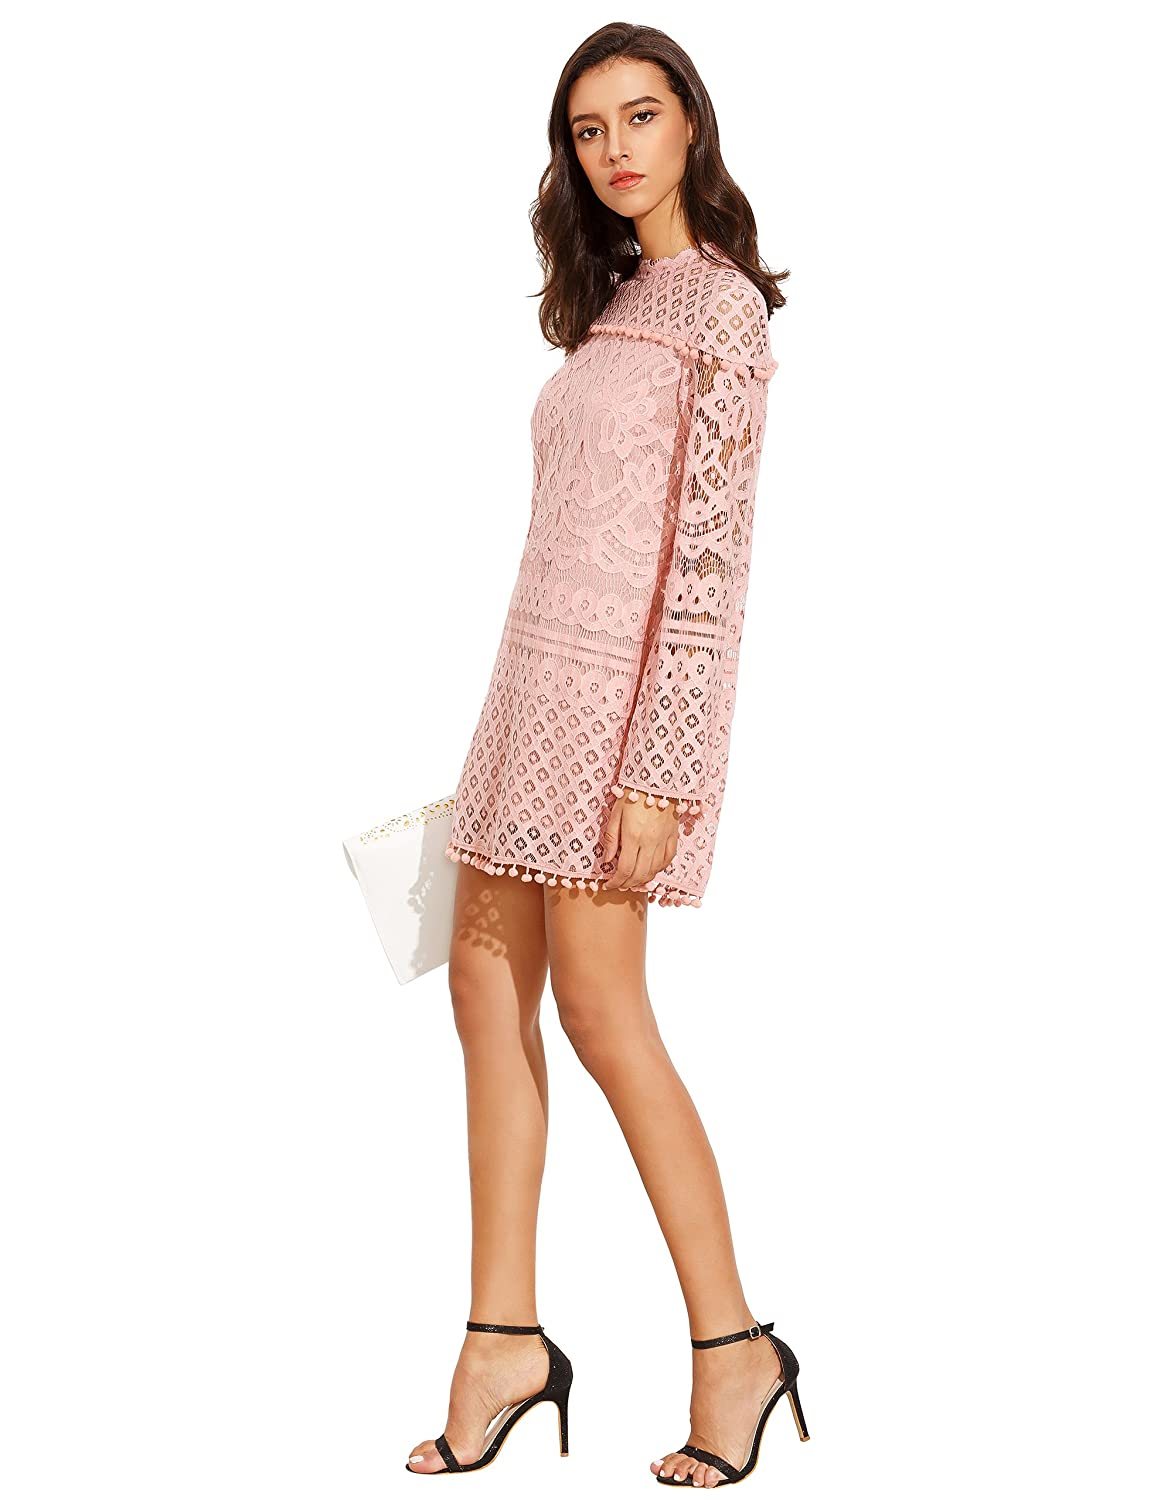 d03ae45793 SheIn Women s Crochet Pom-Pom Sheer Lace Bell Sleeve Dress at Amazon Women s  Clothing store